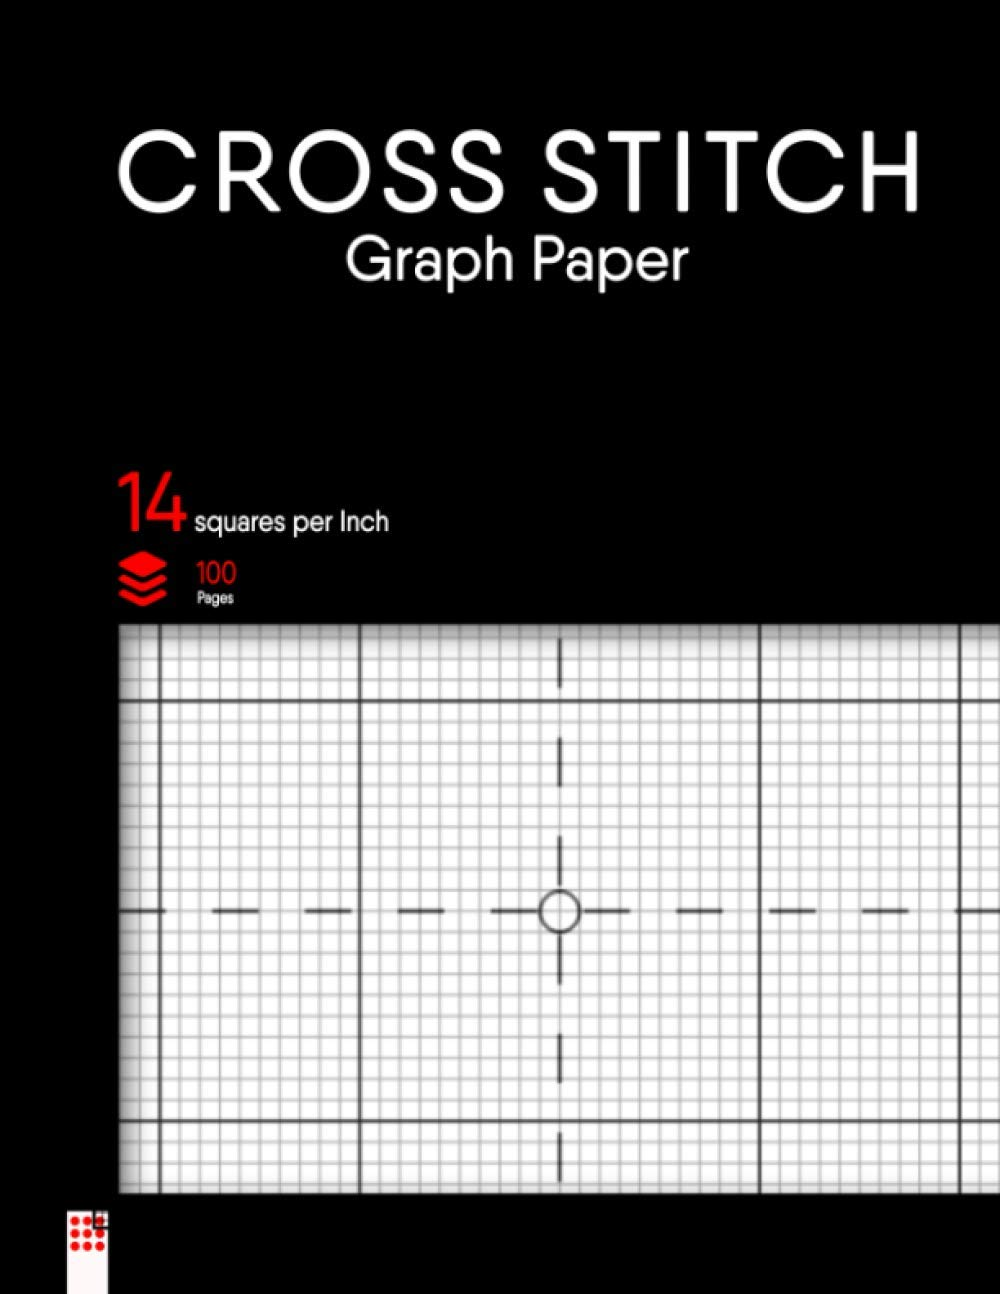 Cross Stitch Graph Paper Notebook: Cross sewing in 14 squares Per inch grid. The 14 traces in line with inch chart makes it simple to create easy or complicated Embroidery paterns & Needlework designs. Din A4